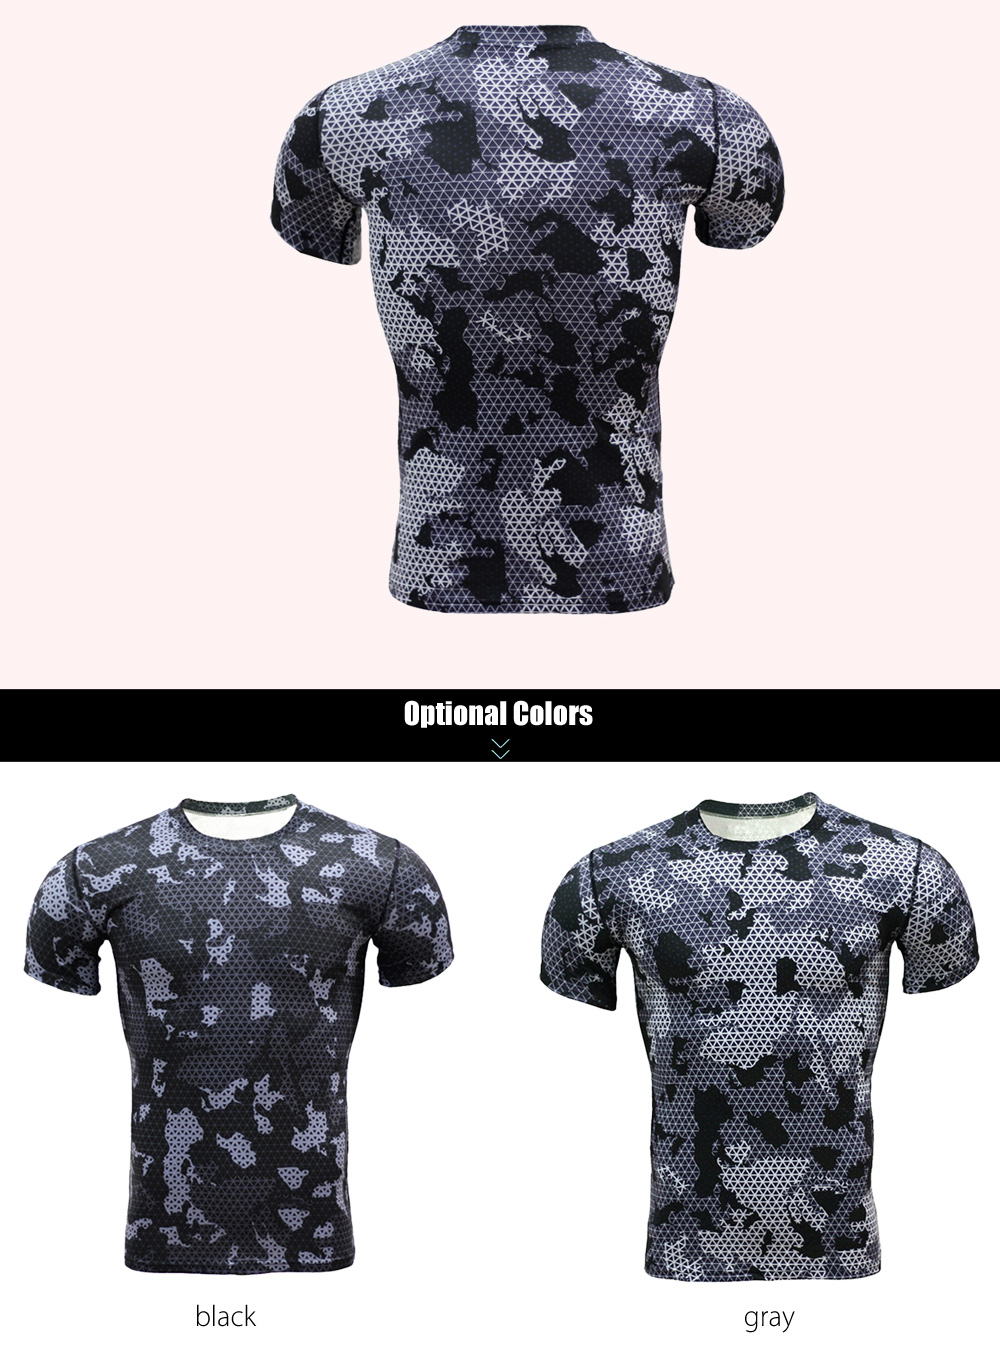 Color Block Grid Print Tight Fit Short Sleeves T-shirt Fitness Training Tops